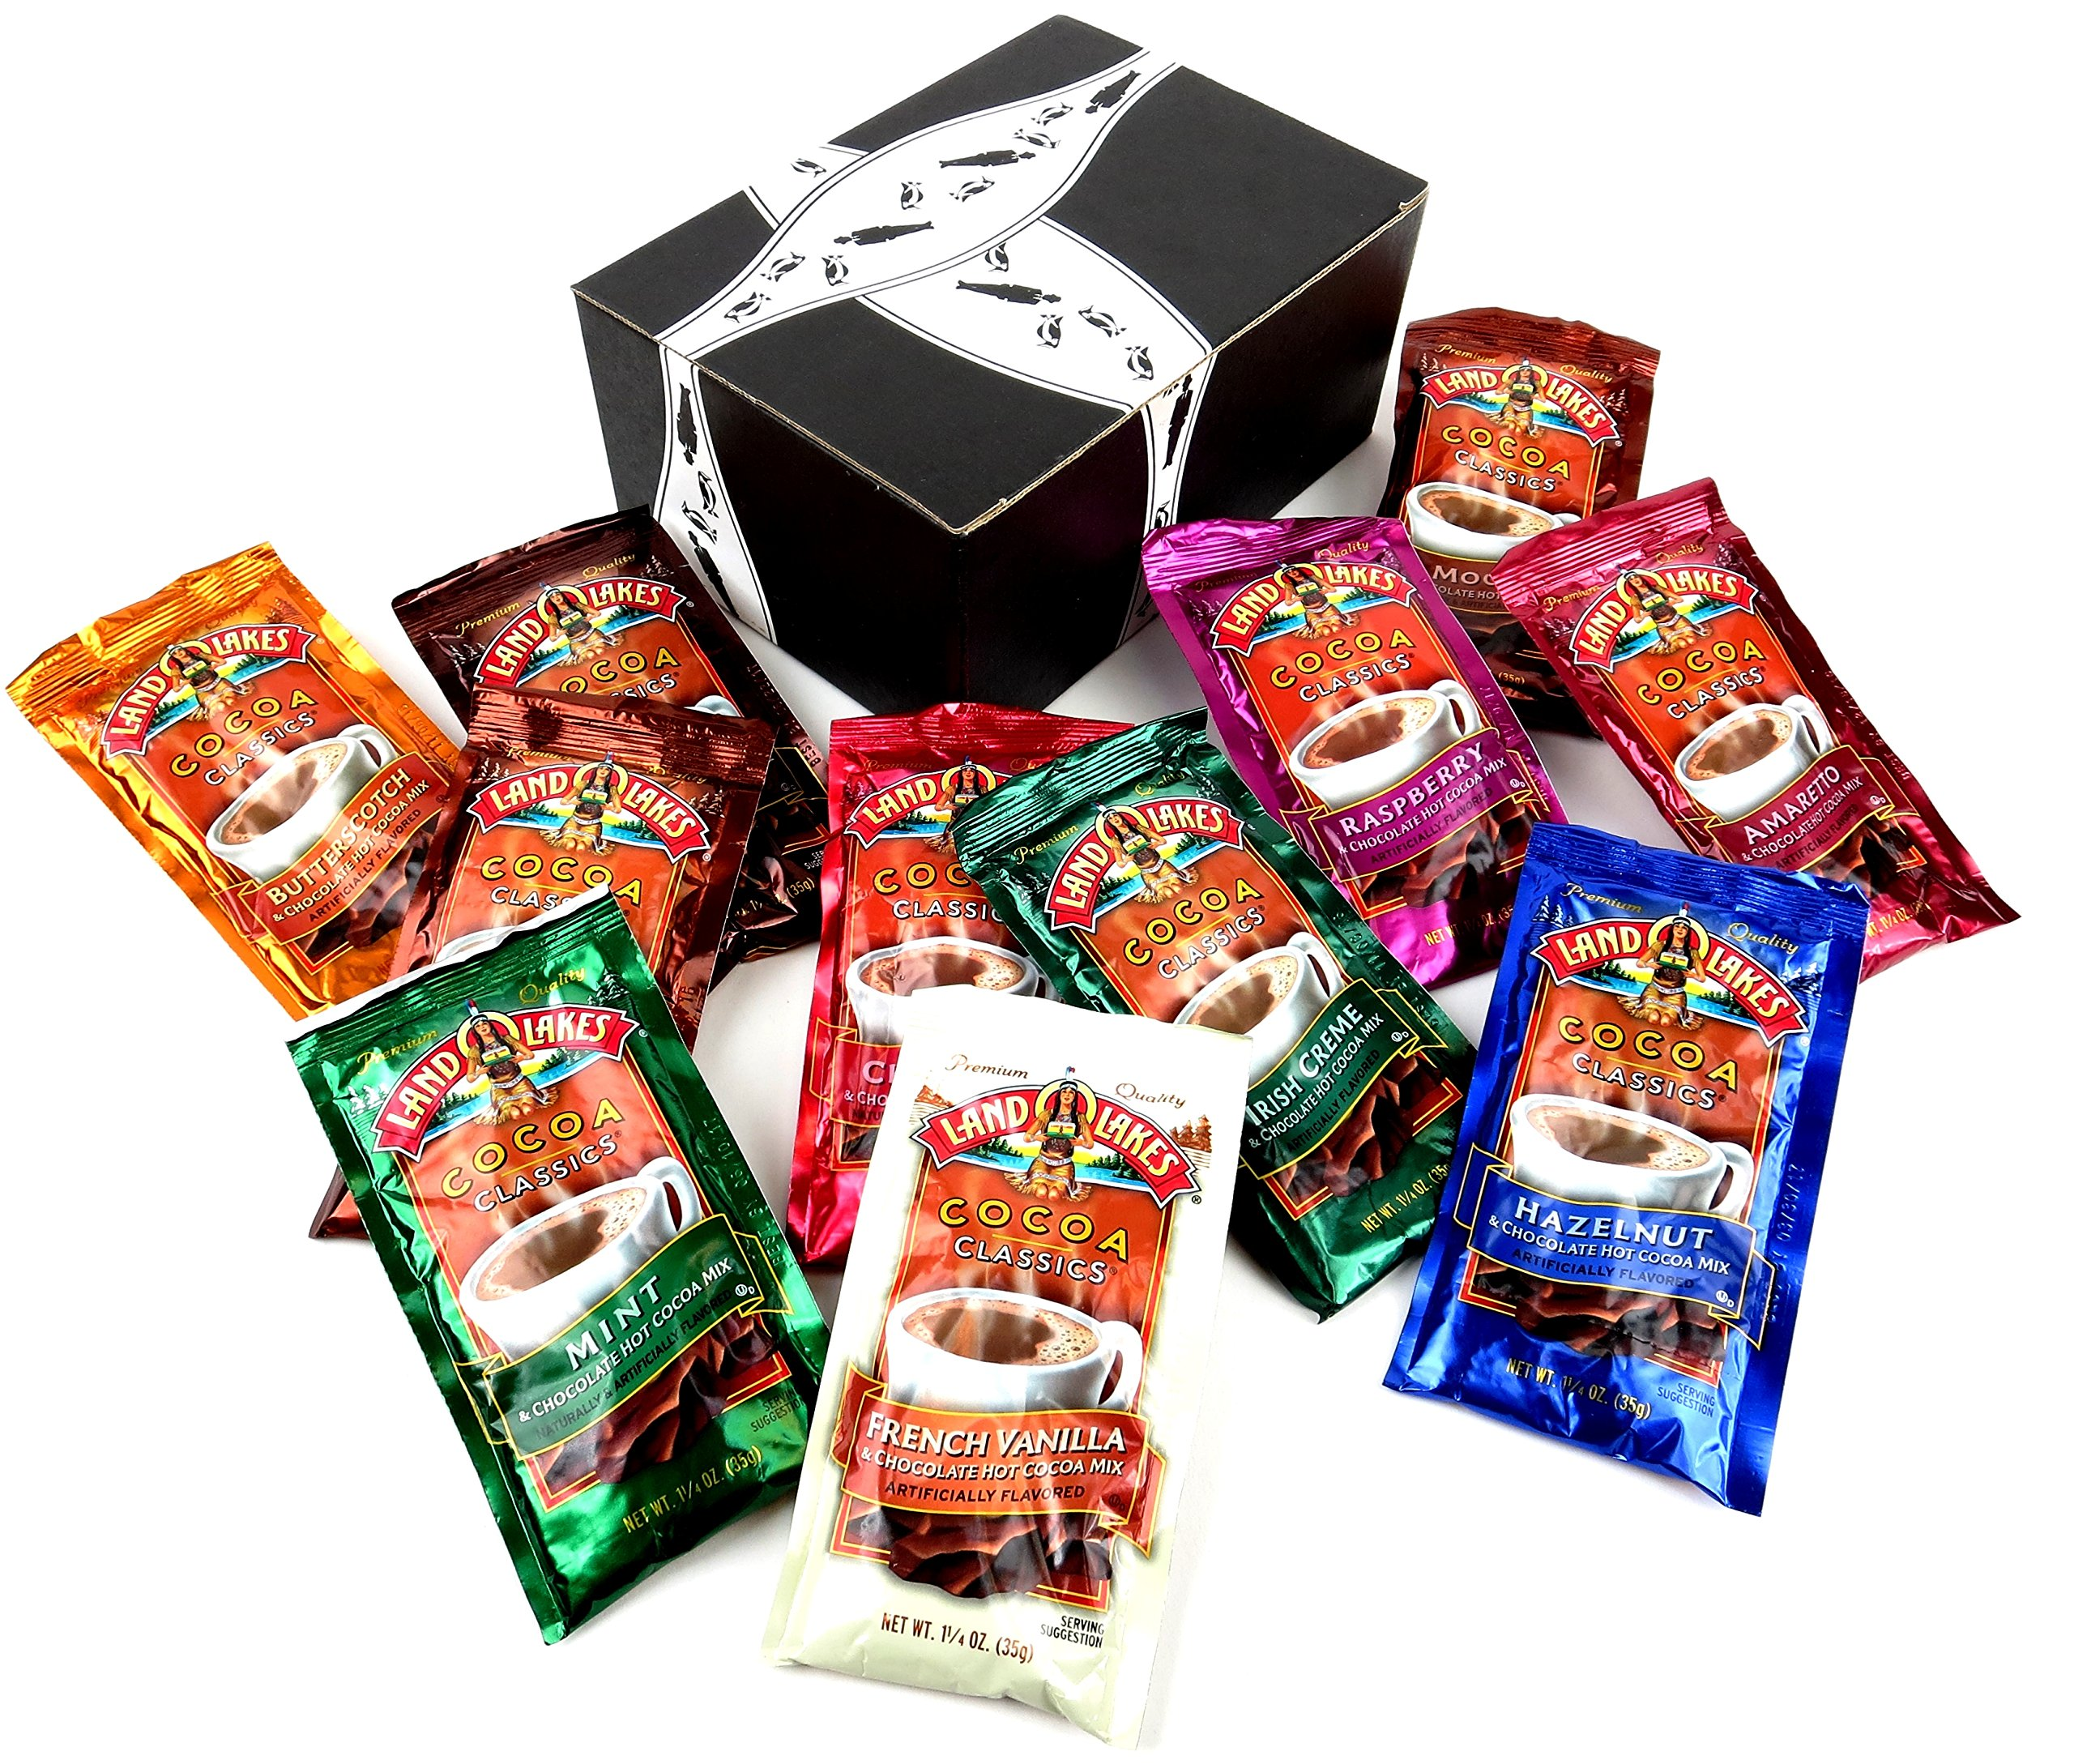 Land O Lakes Cocoa Classics Hot Cocoa Mix 11-Flavor Variety: One 1.25 oz Packet of Each Flavor in a BlackTie Box (11 Items Total)